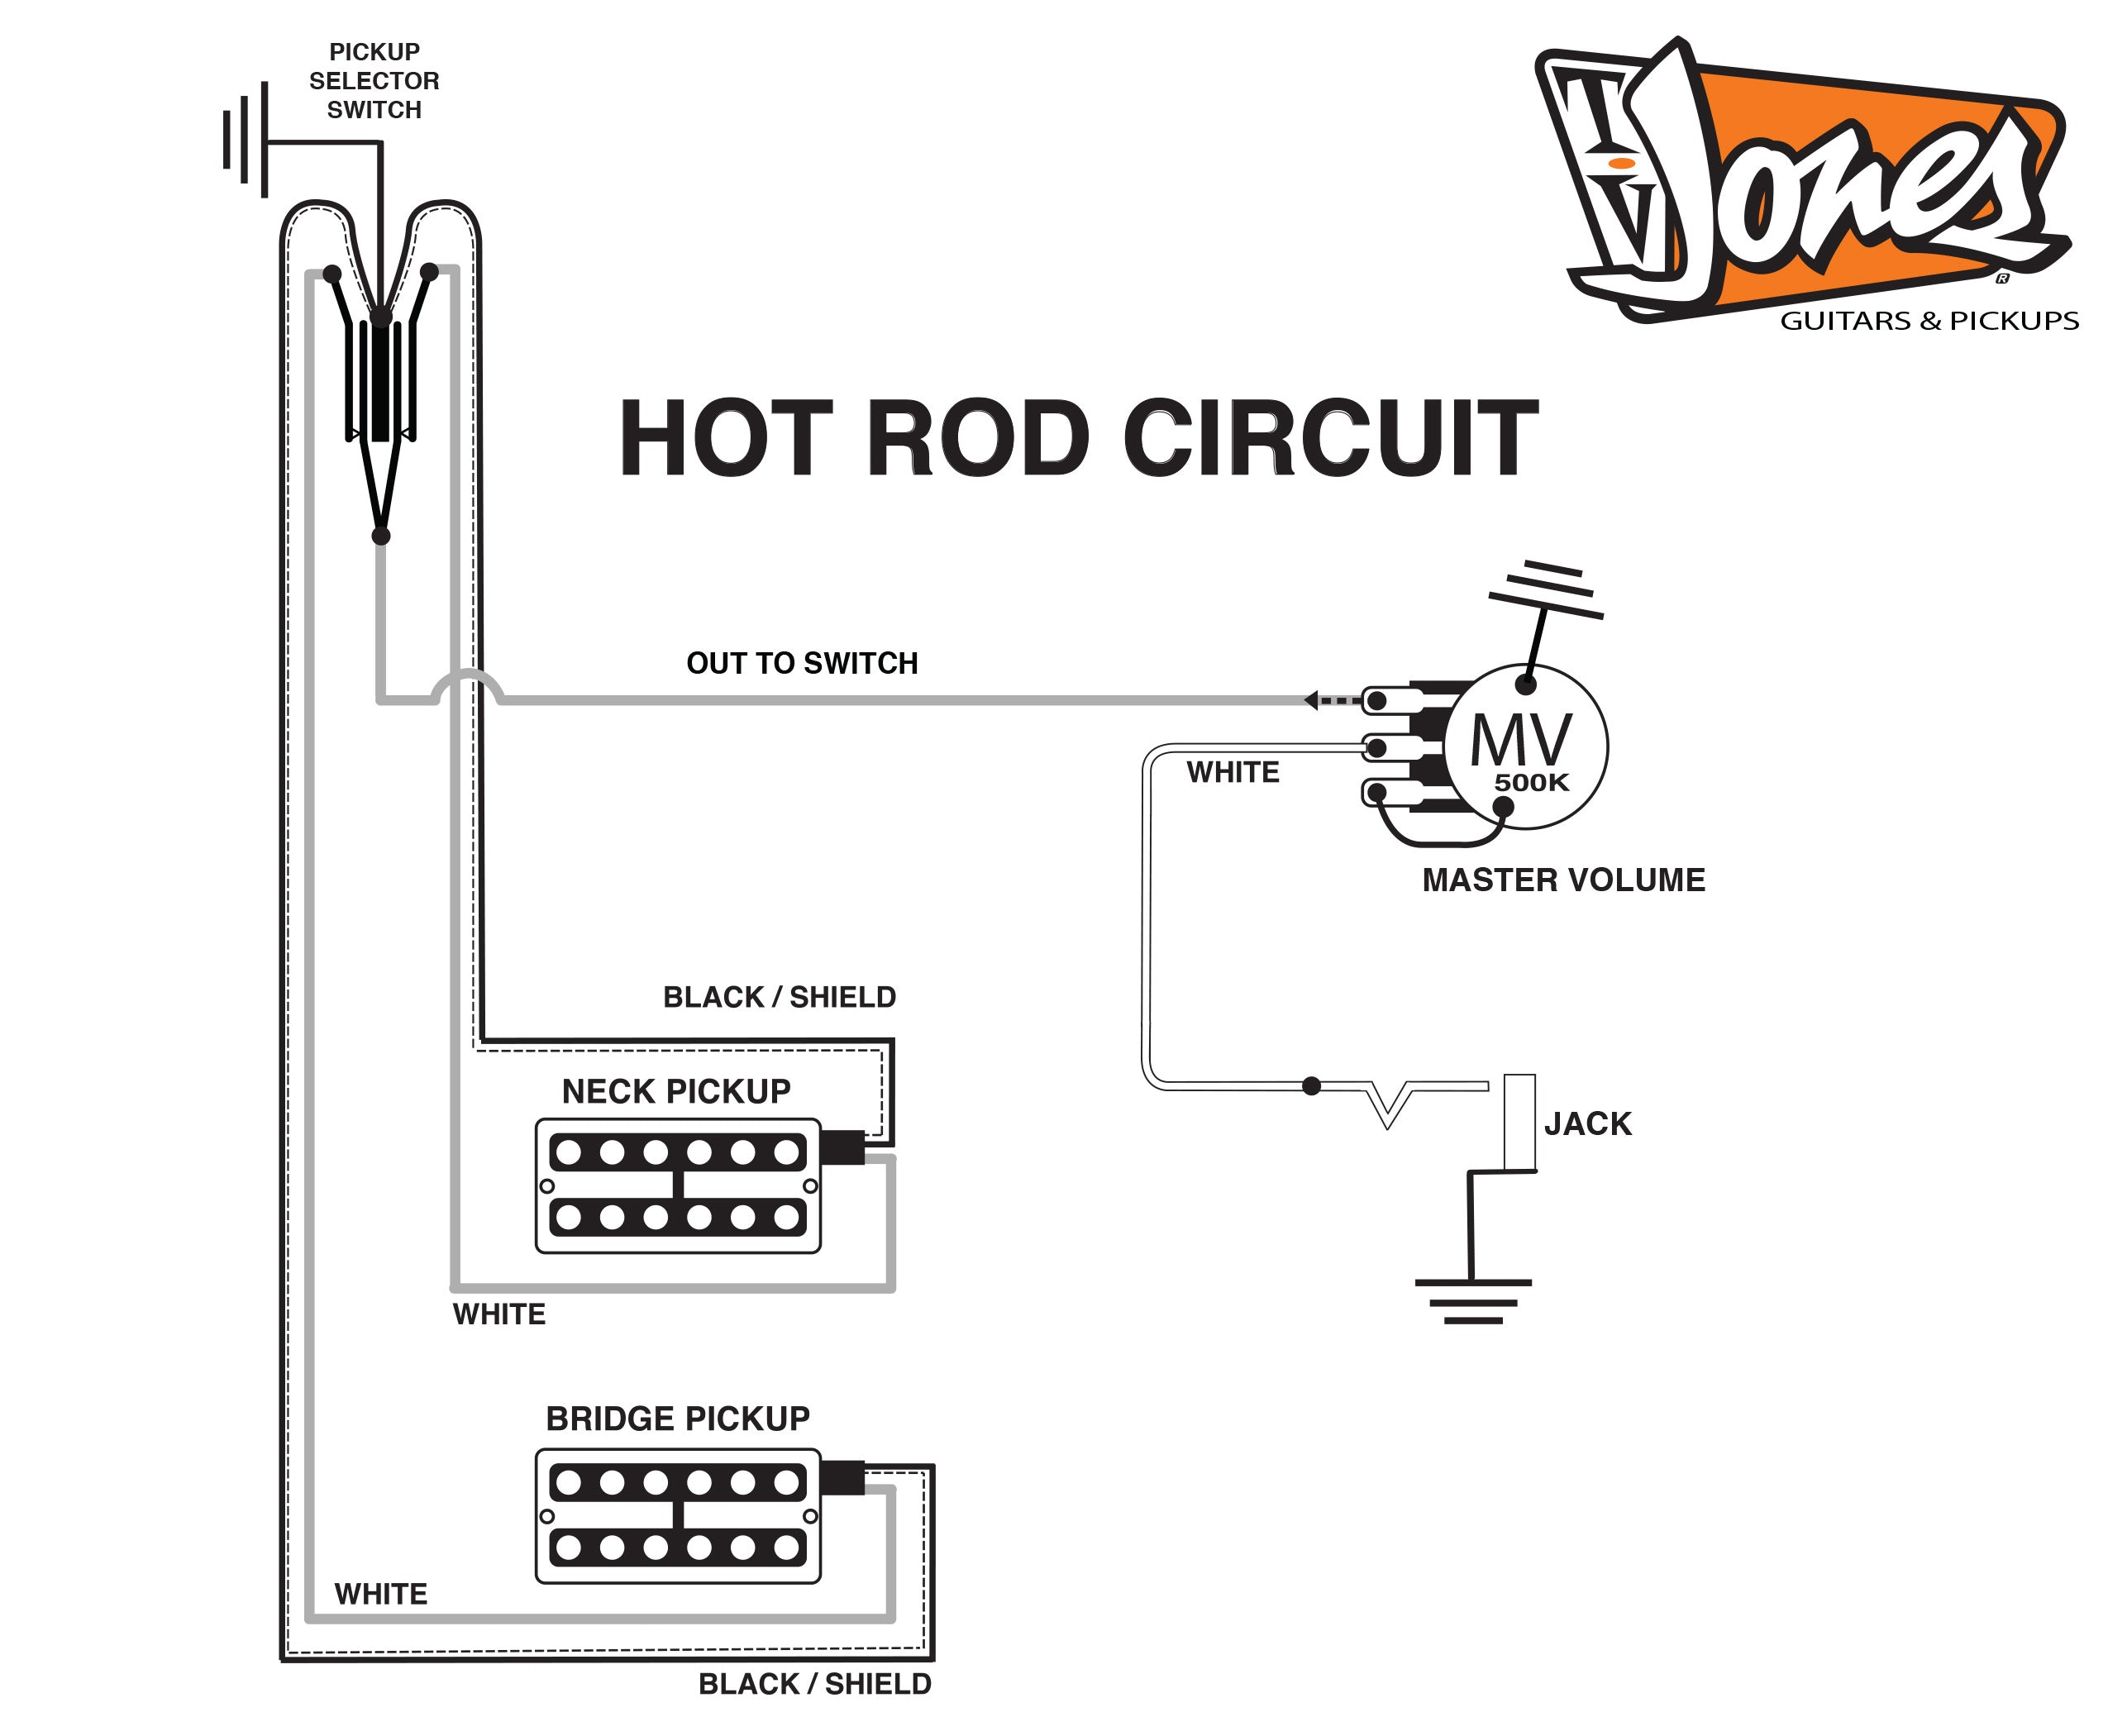 Mud switch broke; convert to hot rod wiring? : The